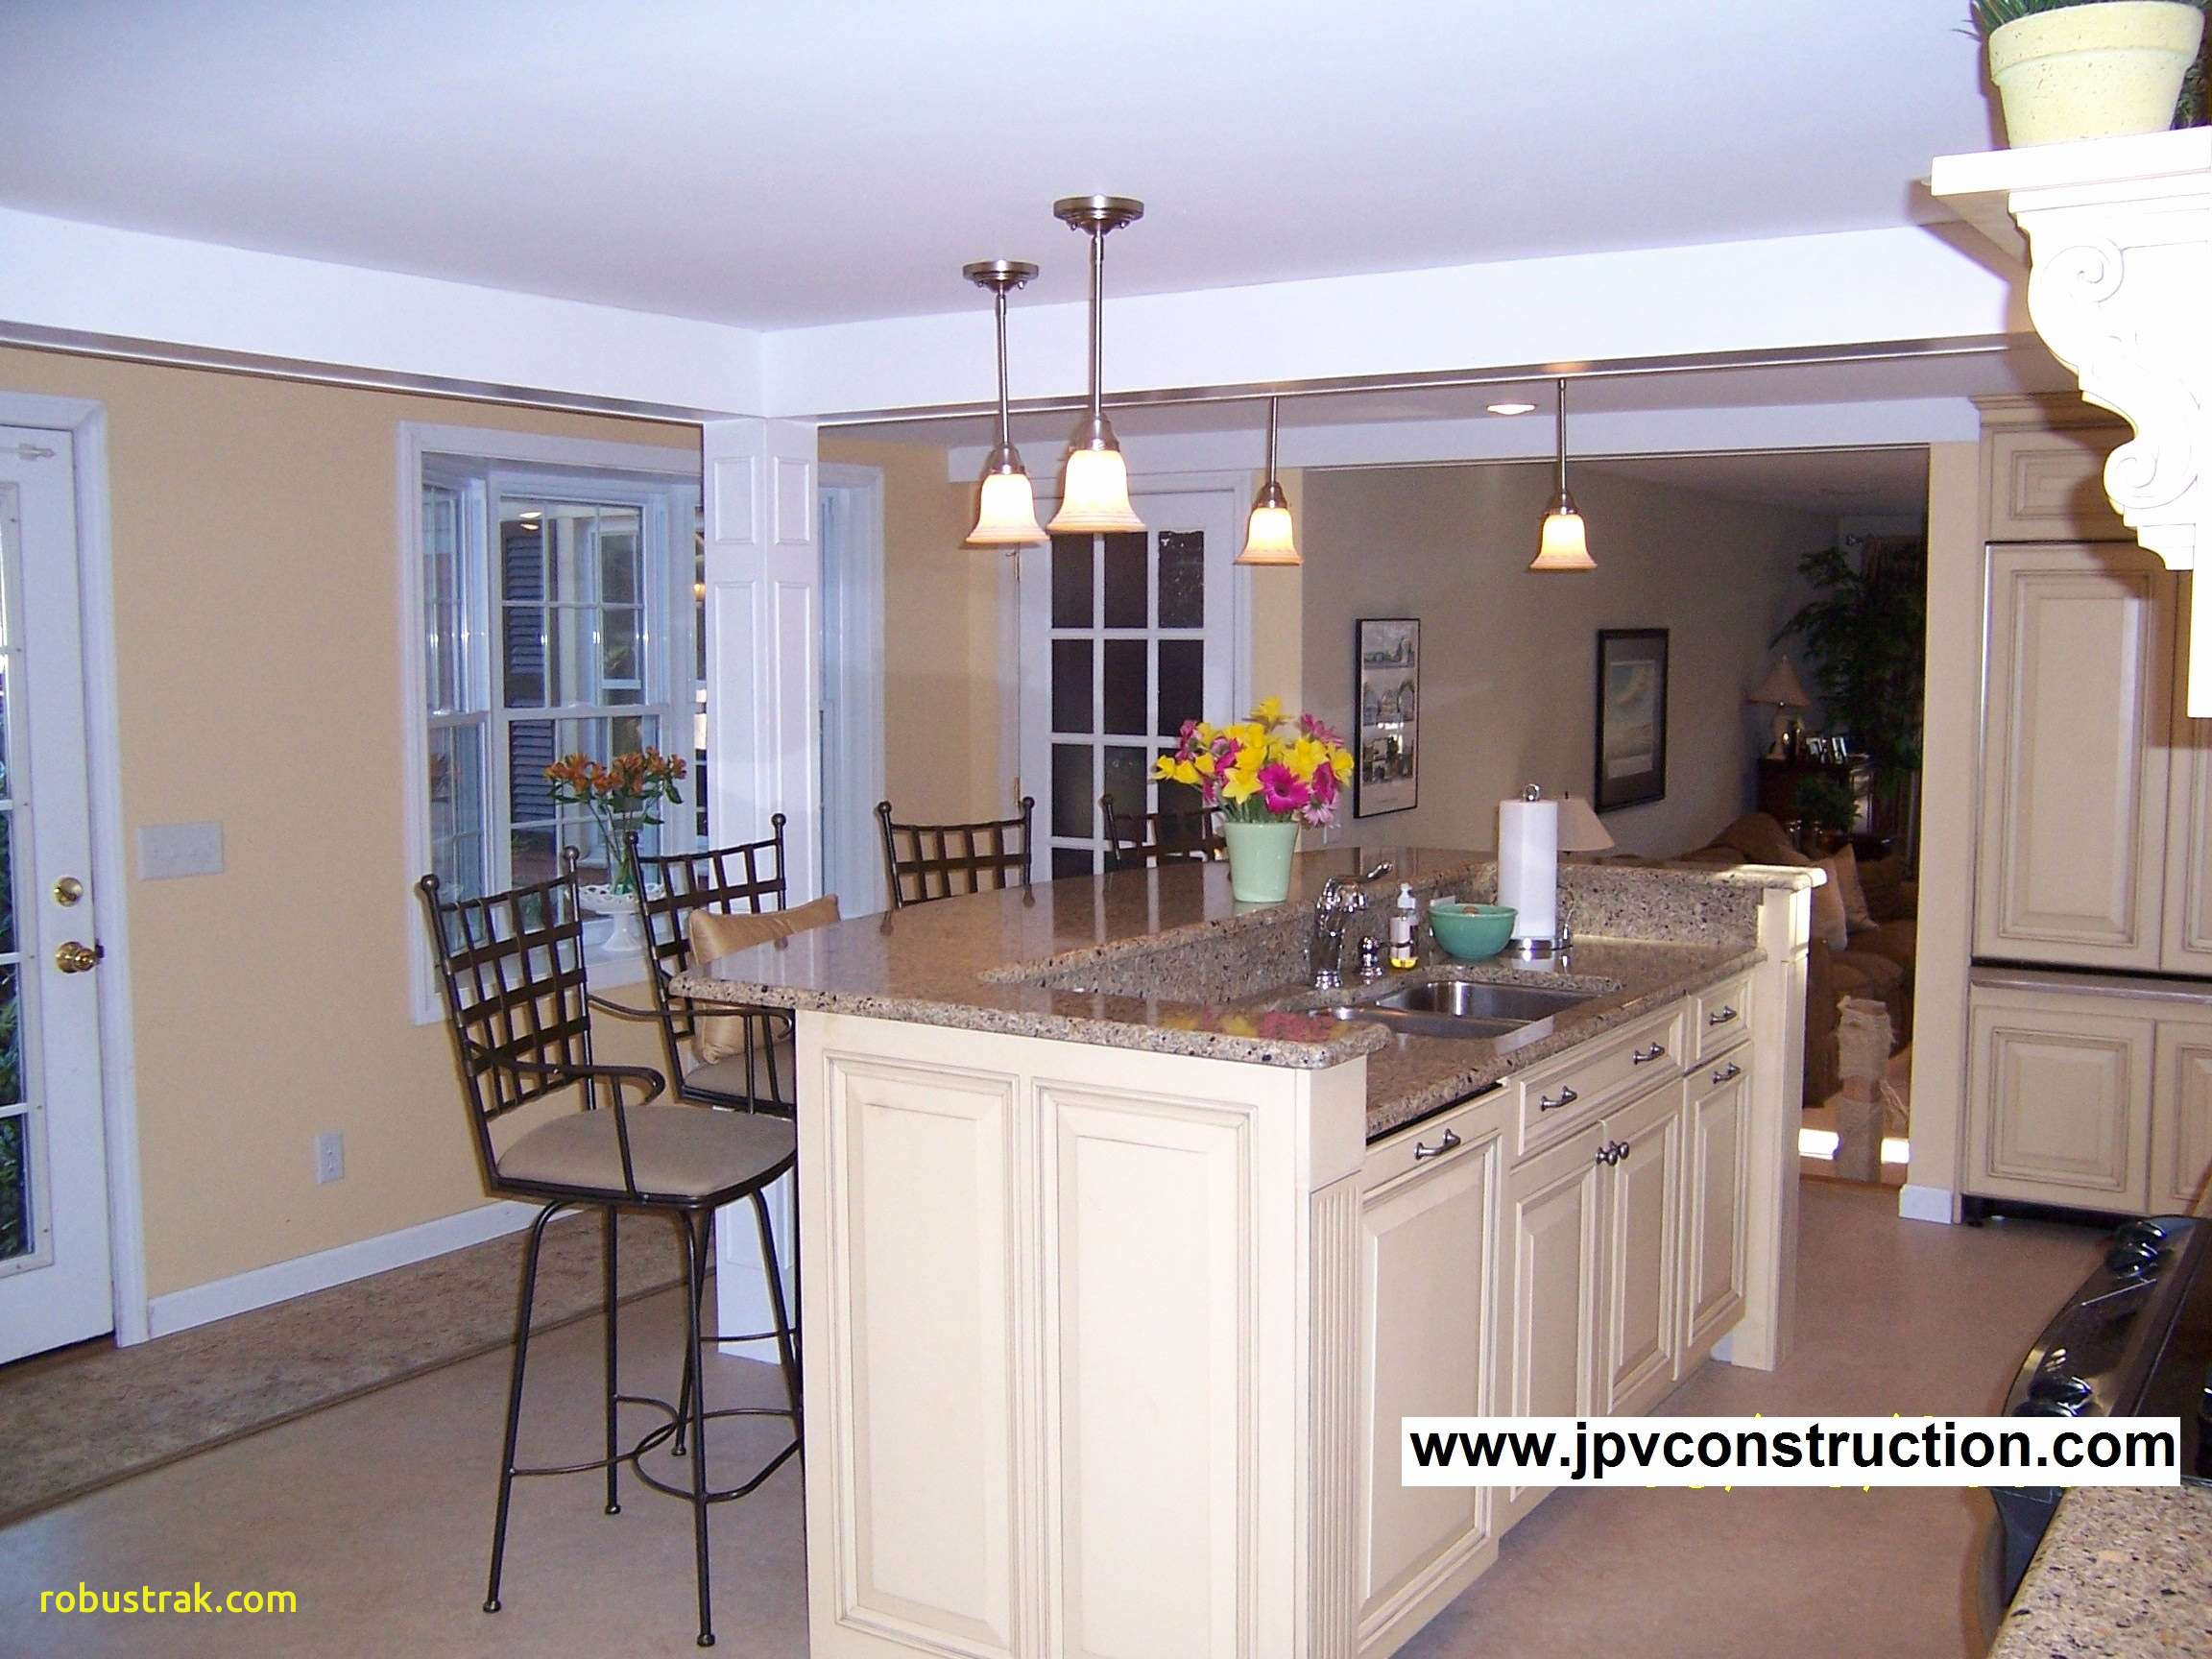 hardwood floor layout ideas of fresh kitchen layout ideas home design ideas throughout designs for small kitchens new kitchen island with sink ideash islands ideasi 0d excellent and